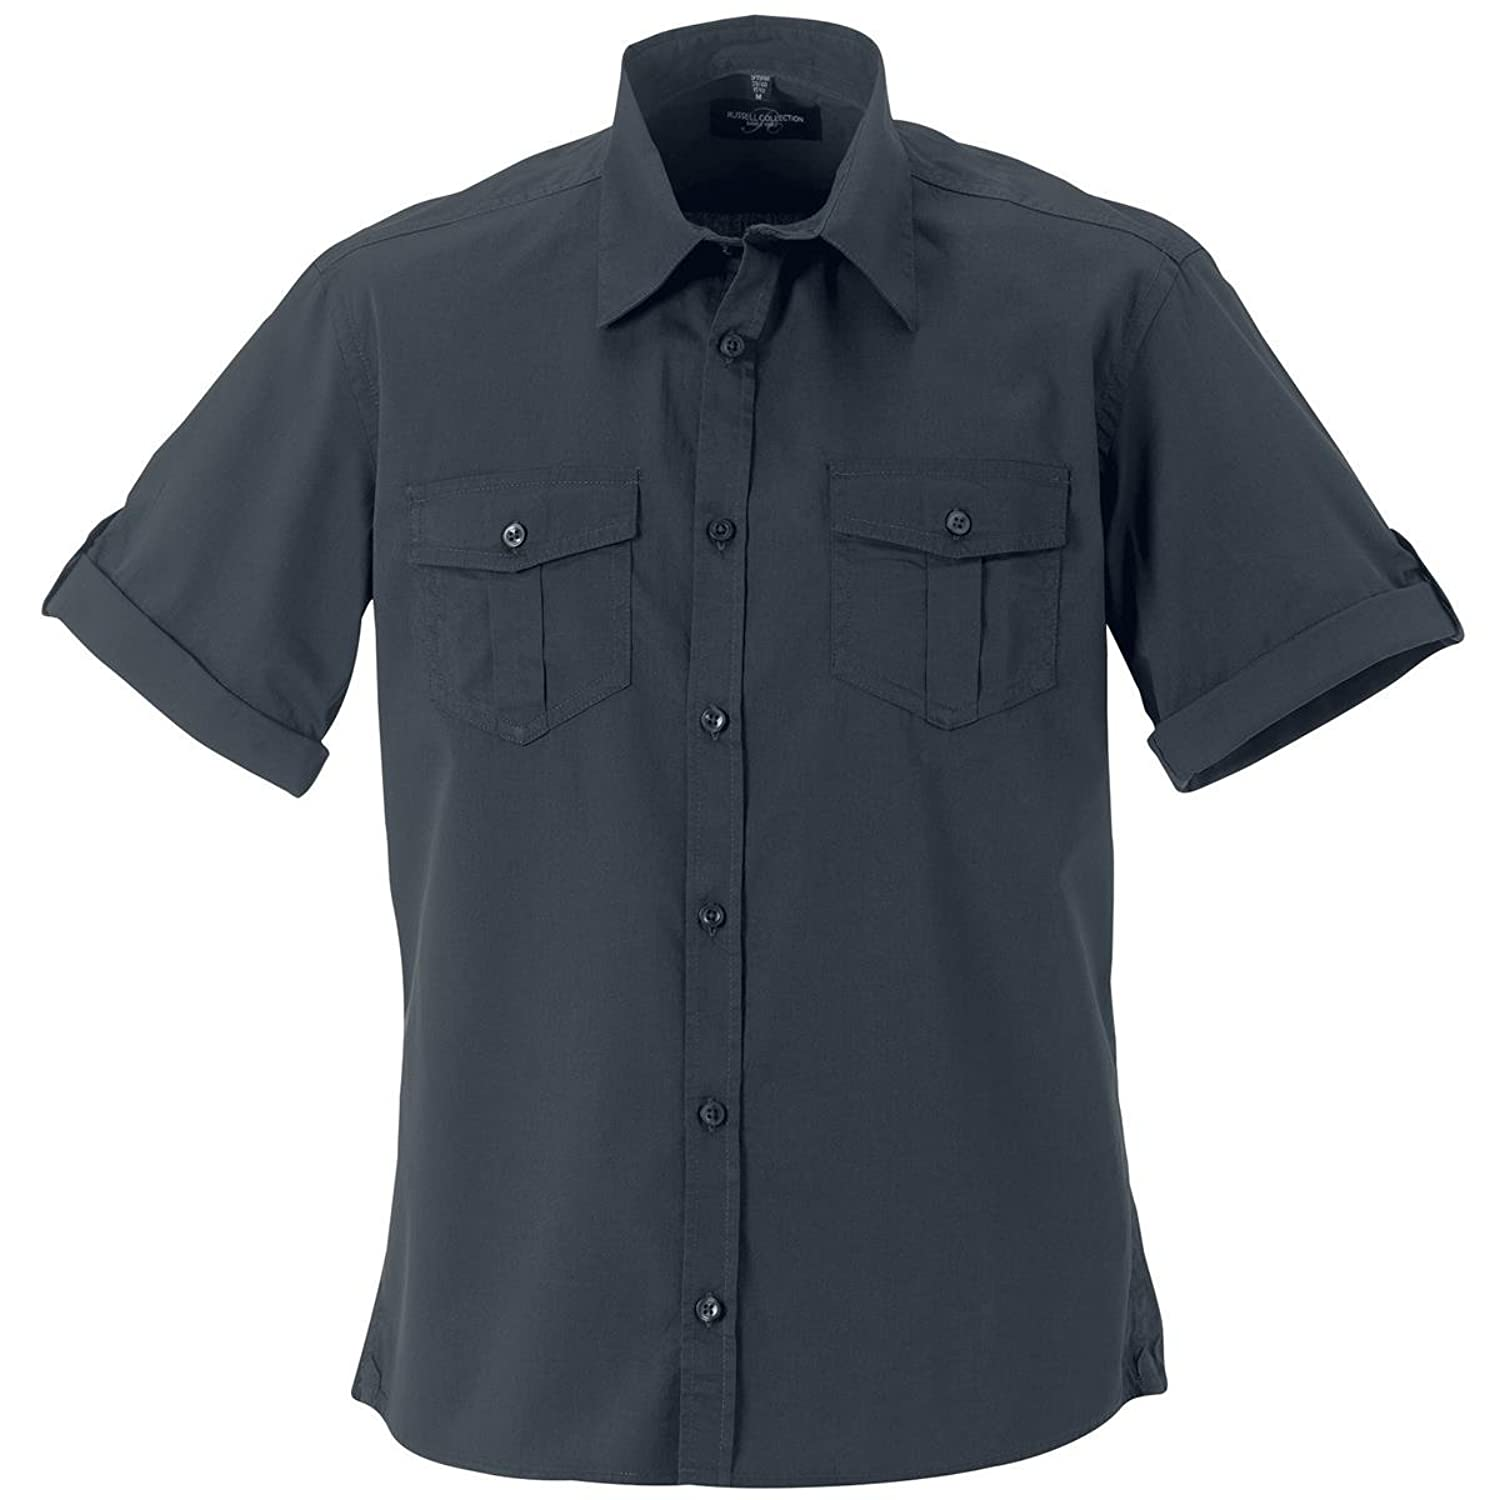 New Mens Roll-Sleeve Shirt Short Sleeve Modern Fitted Rounded Hem Casual Shirt